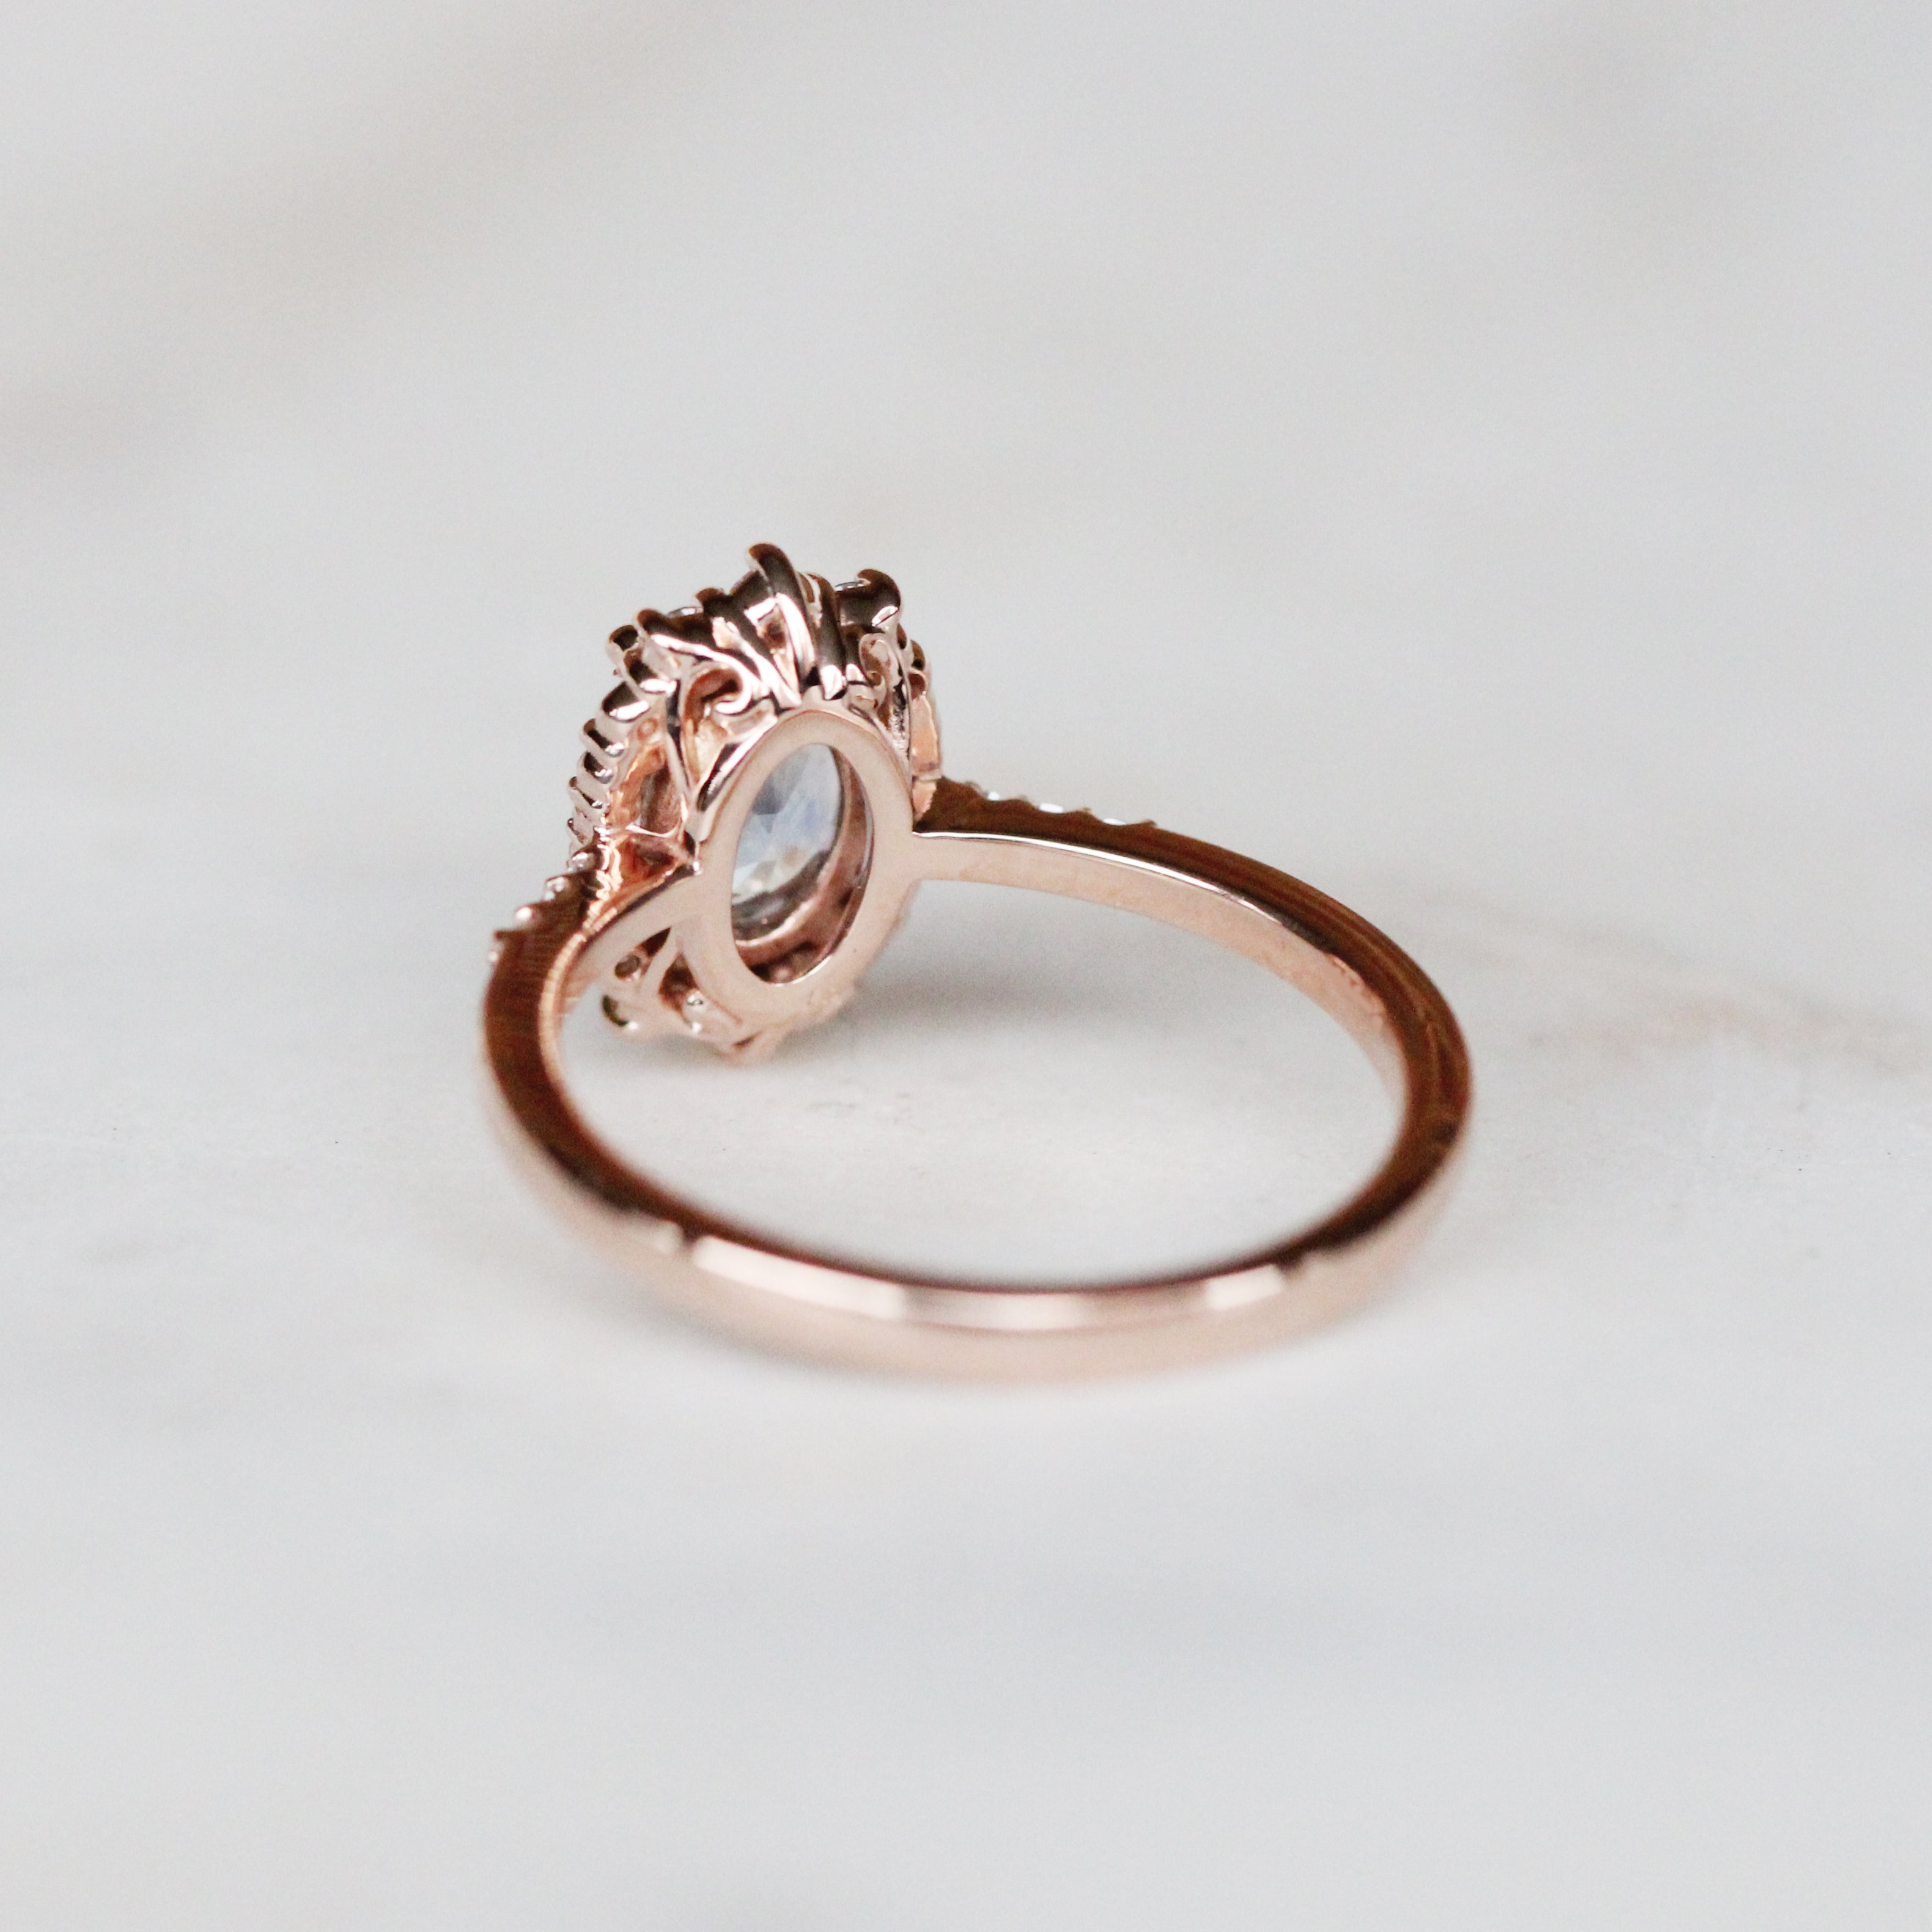 1.42 Carat Grace Sapphire Ring in 14k Rose Gold - Ready to size and ship - Midwinter Co. Alternative Bridal Rings and Modern Fine Jewelry